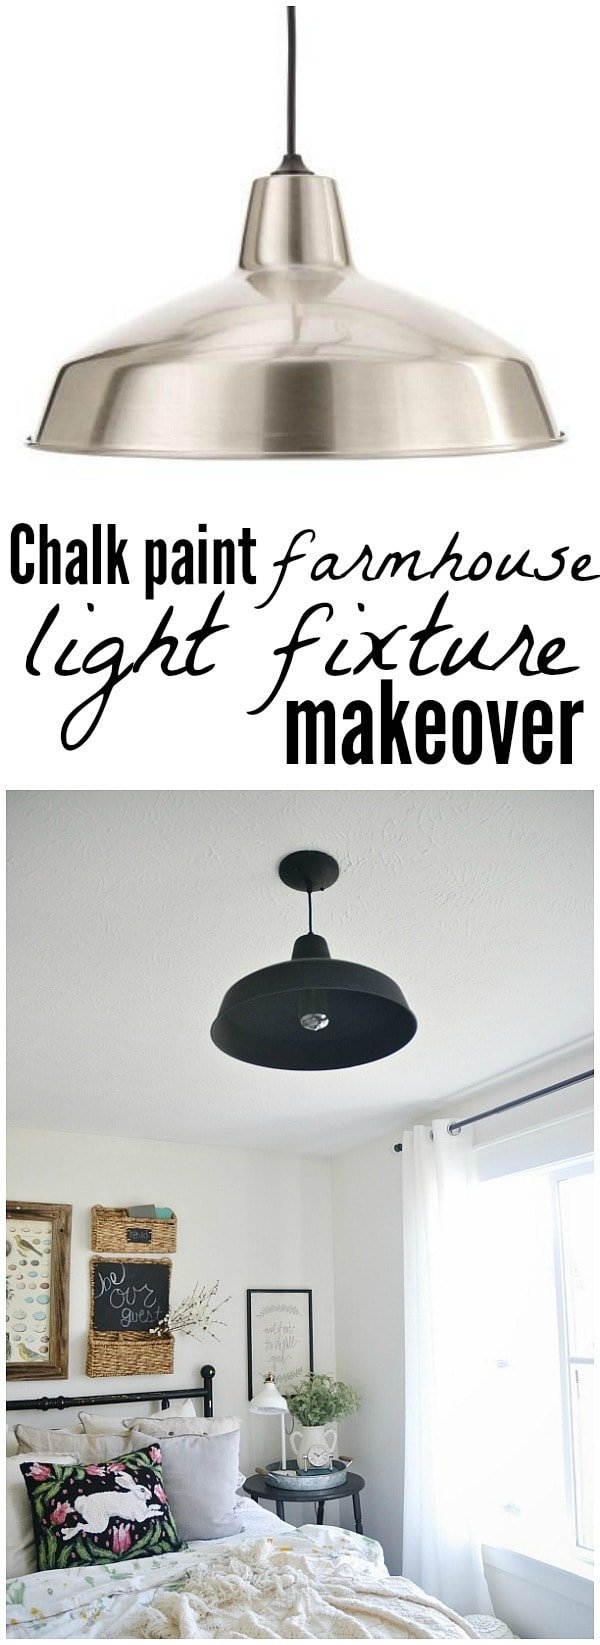 Chalk paint farmhouse light fixture - See where to find this farmhouse light fixture for less than $30 & how to easily customize it for your home!!